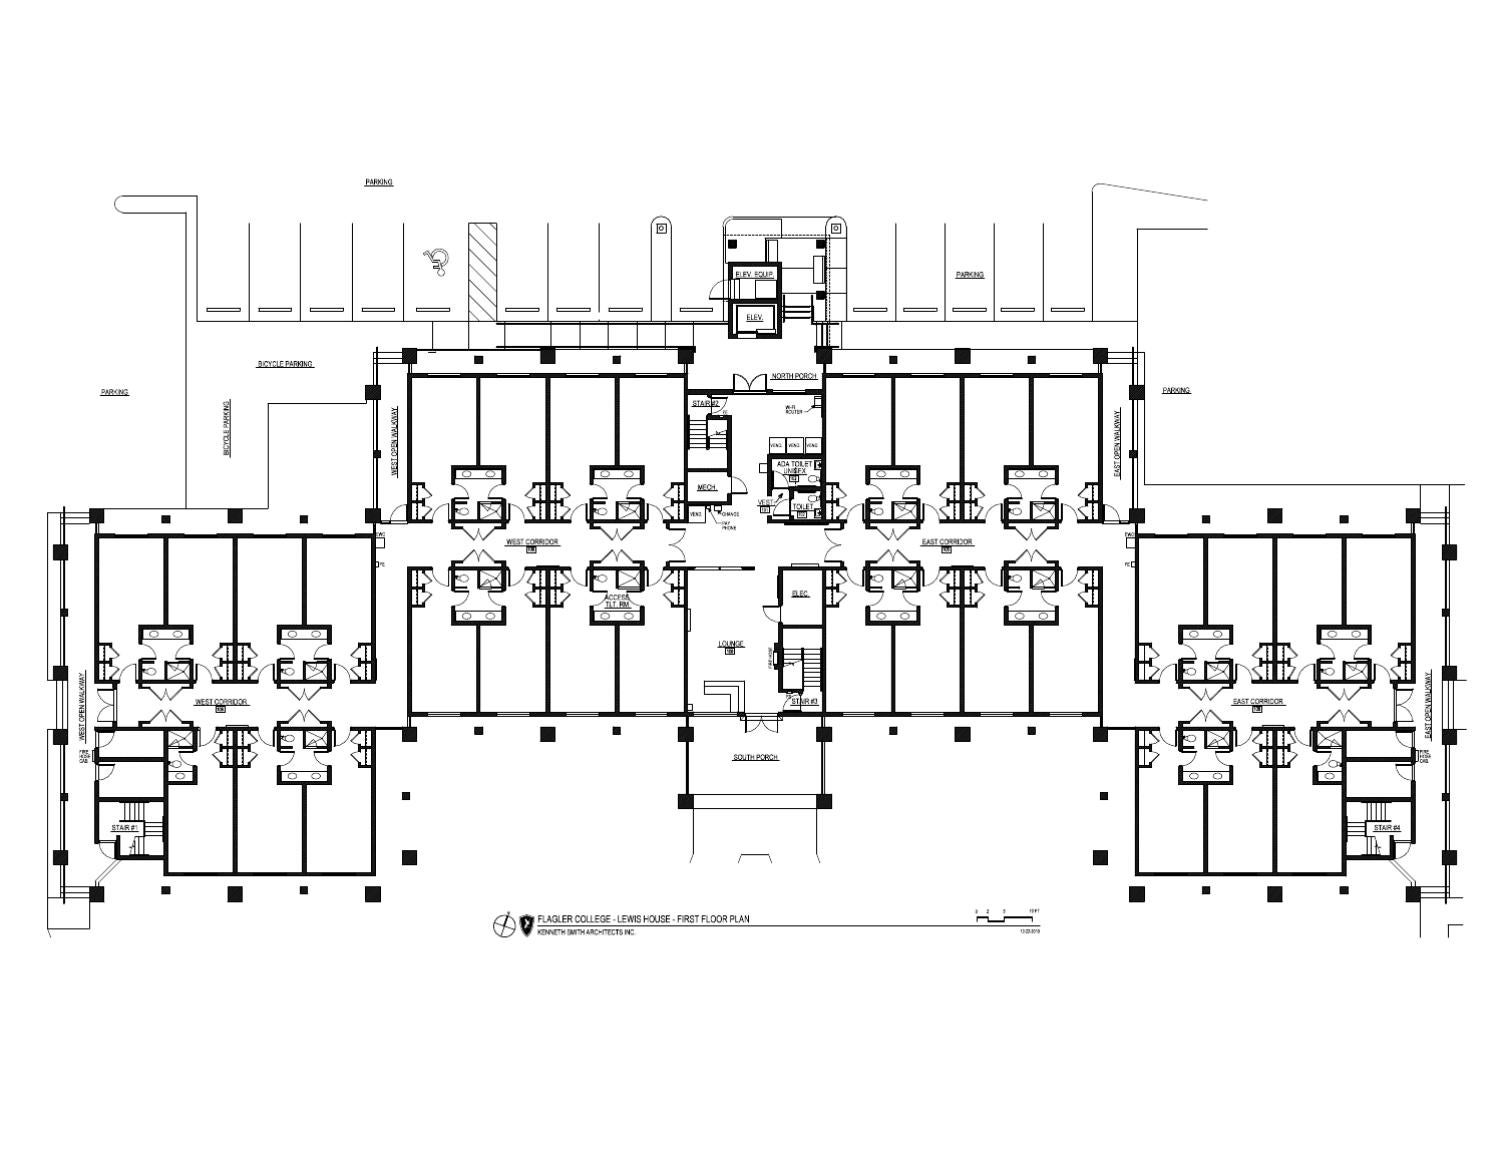 Lewis house floor plan by flagler college issuu for Floor plans lafayette college